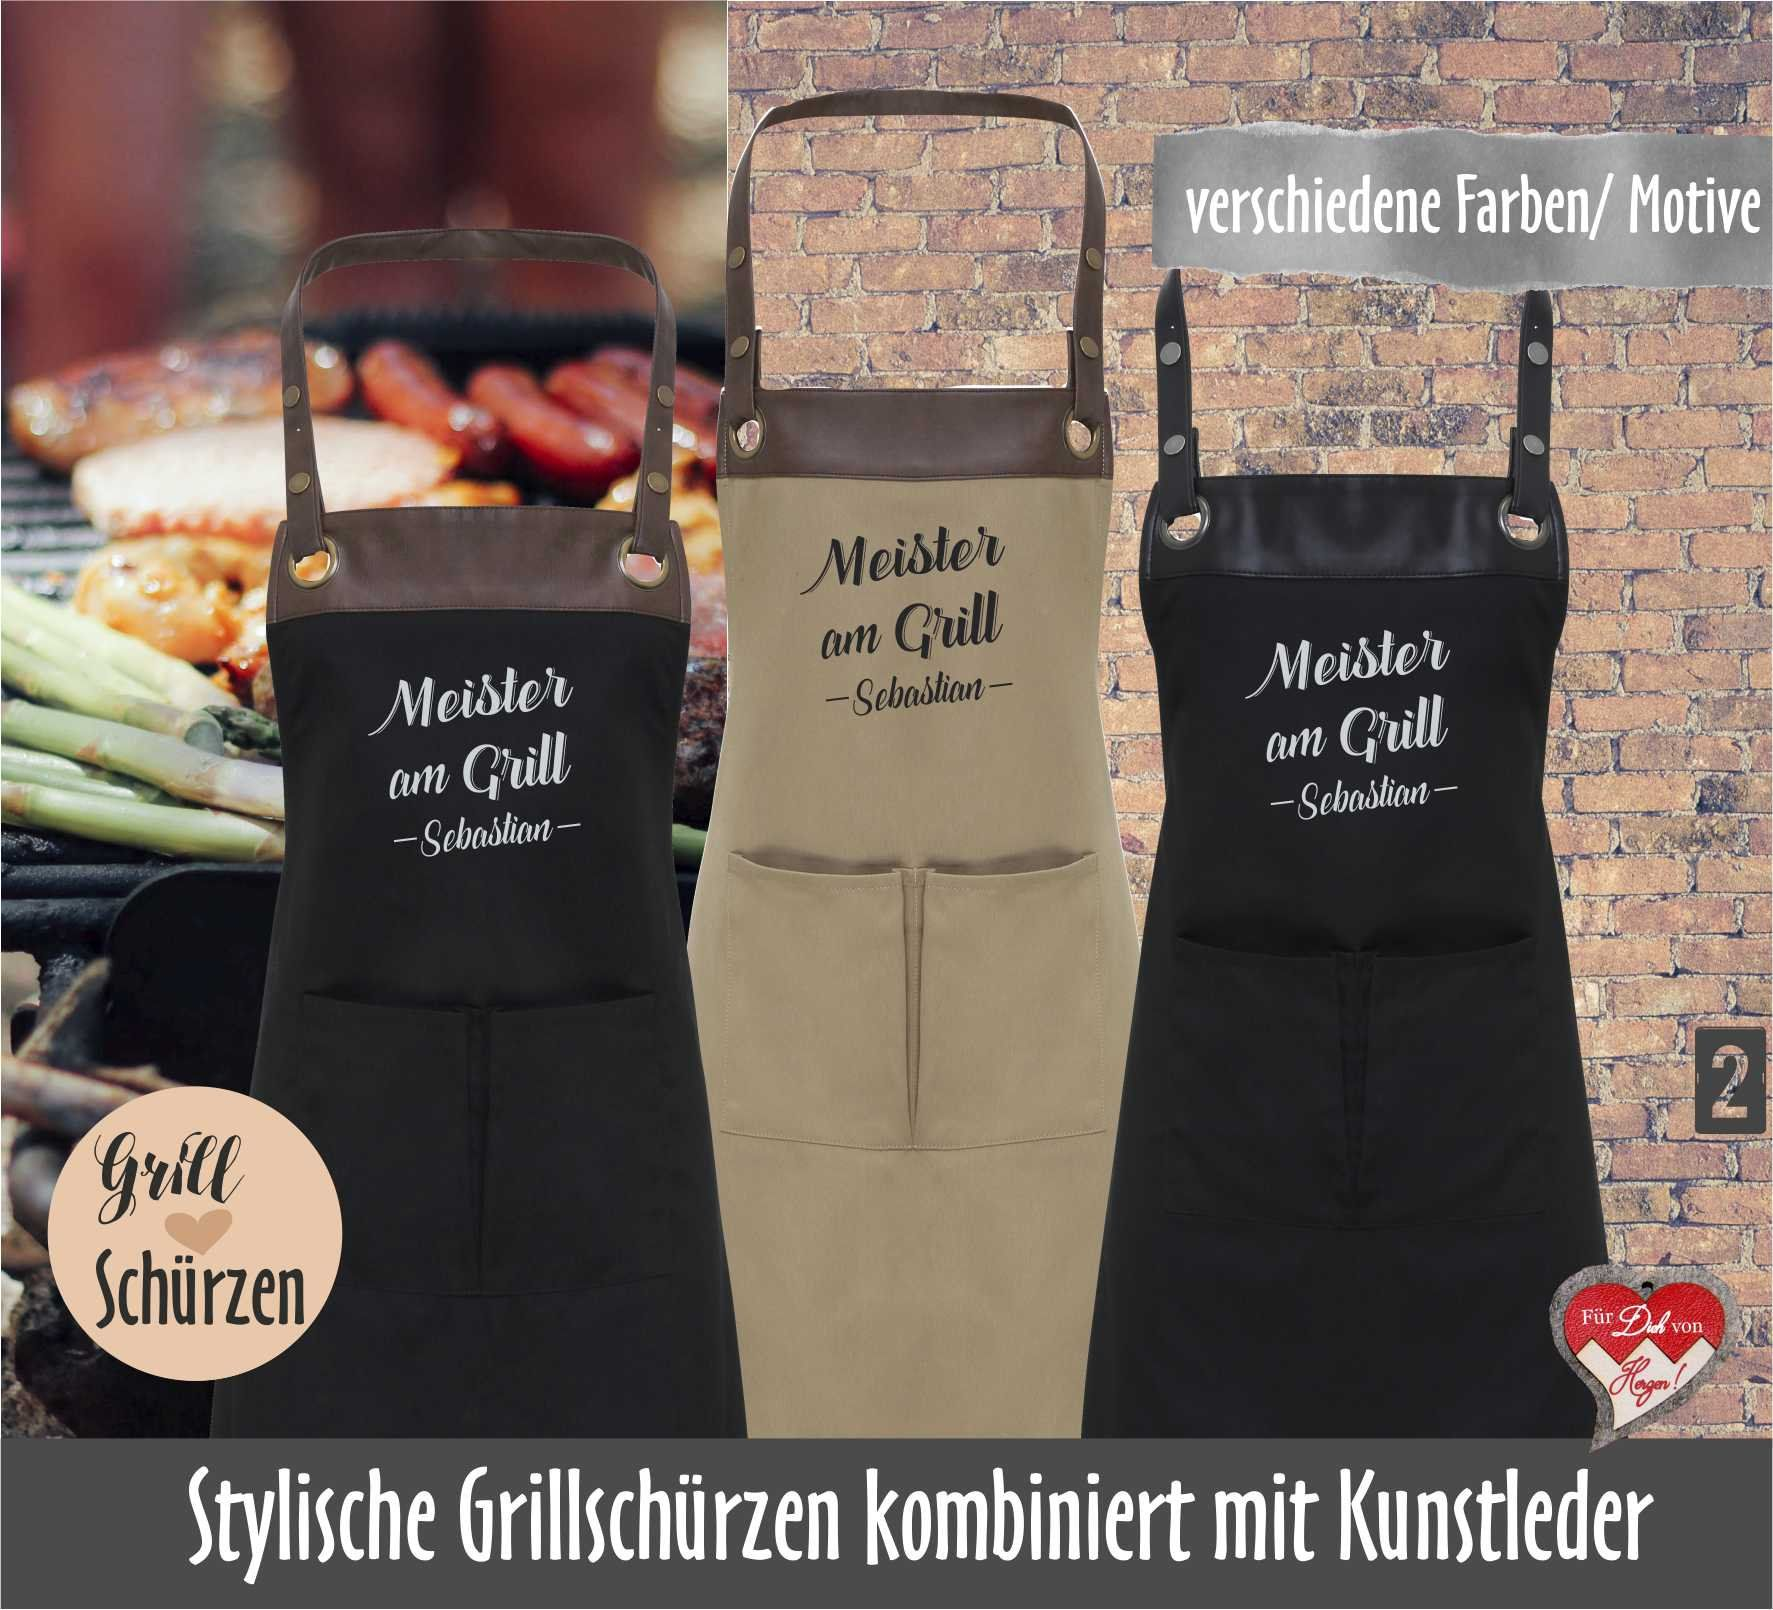 Personalized Barbecue Apron Apron With Name Custom Birthday Gift For Men Geburtstagsgeschenk Mann Coole Geschenke Für Männer Grillschürze